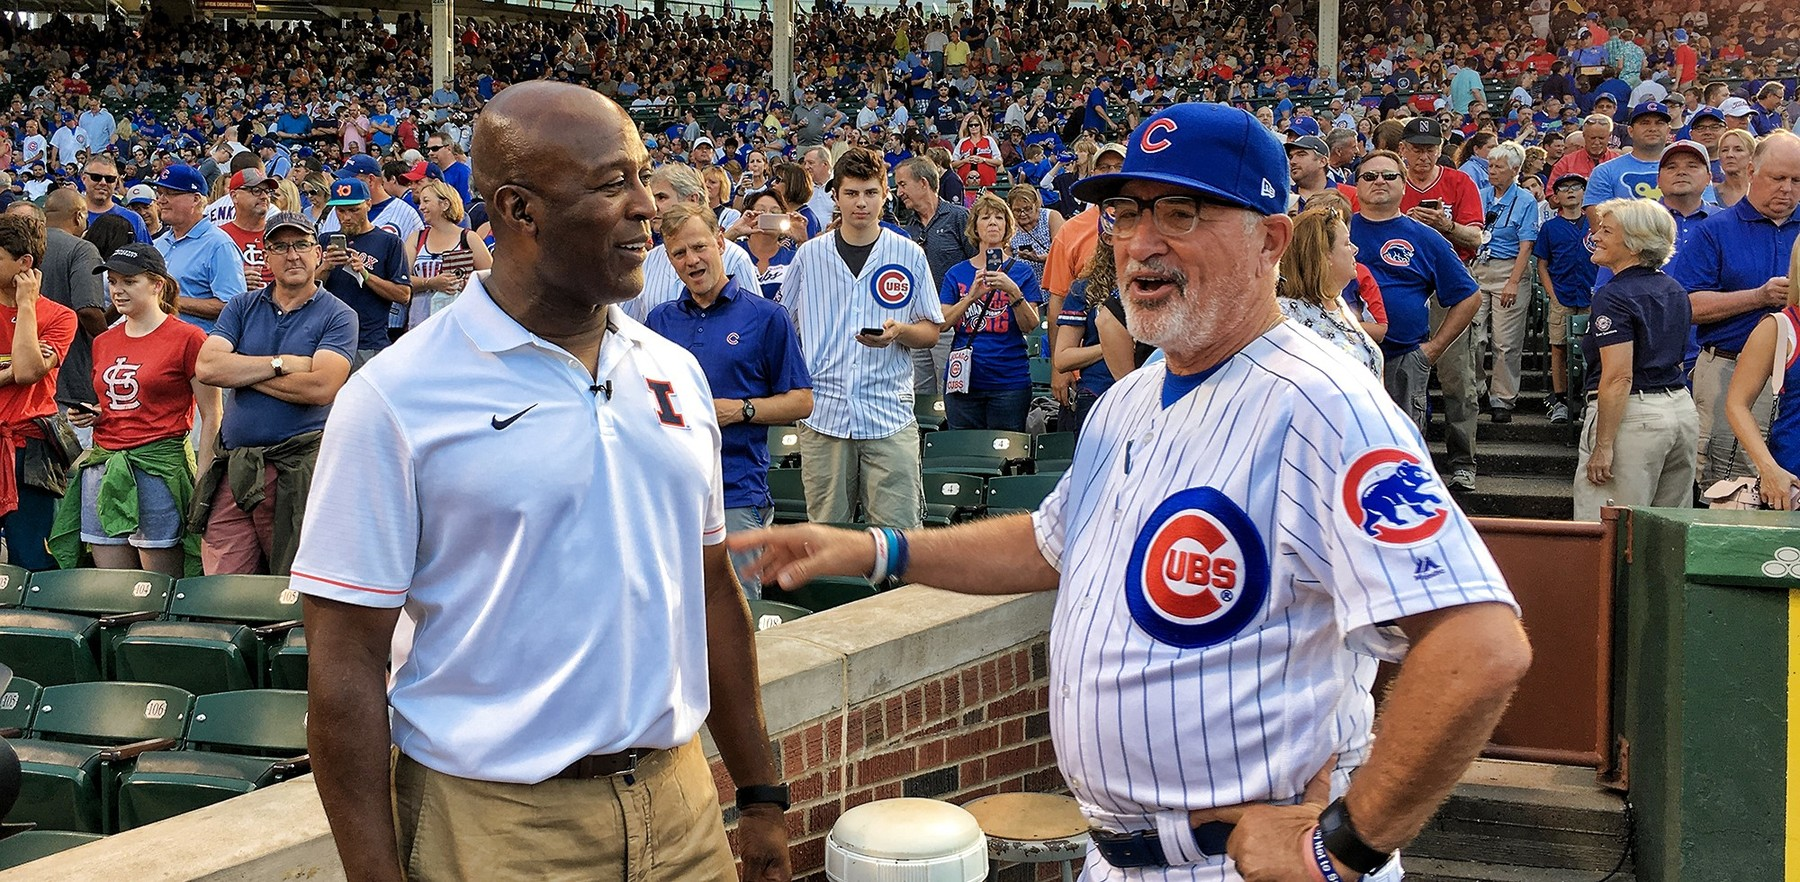 Lovie Smith and actor Bill Murray at a recent Cardinals-Cubs baseball game